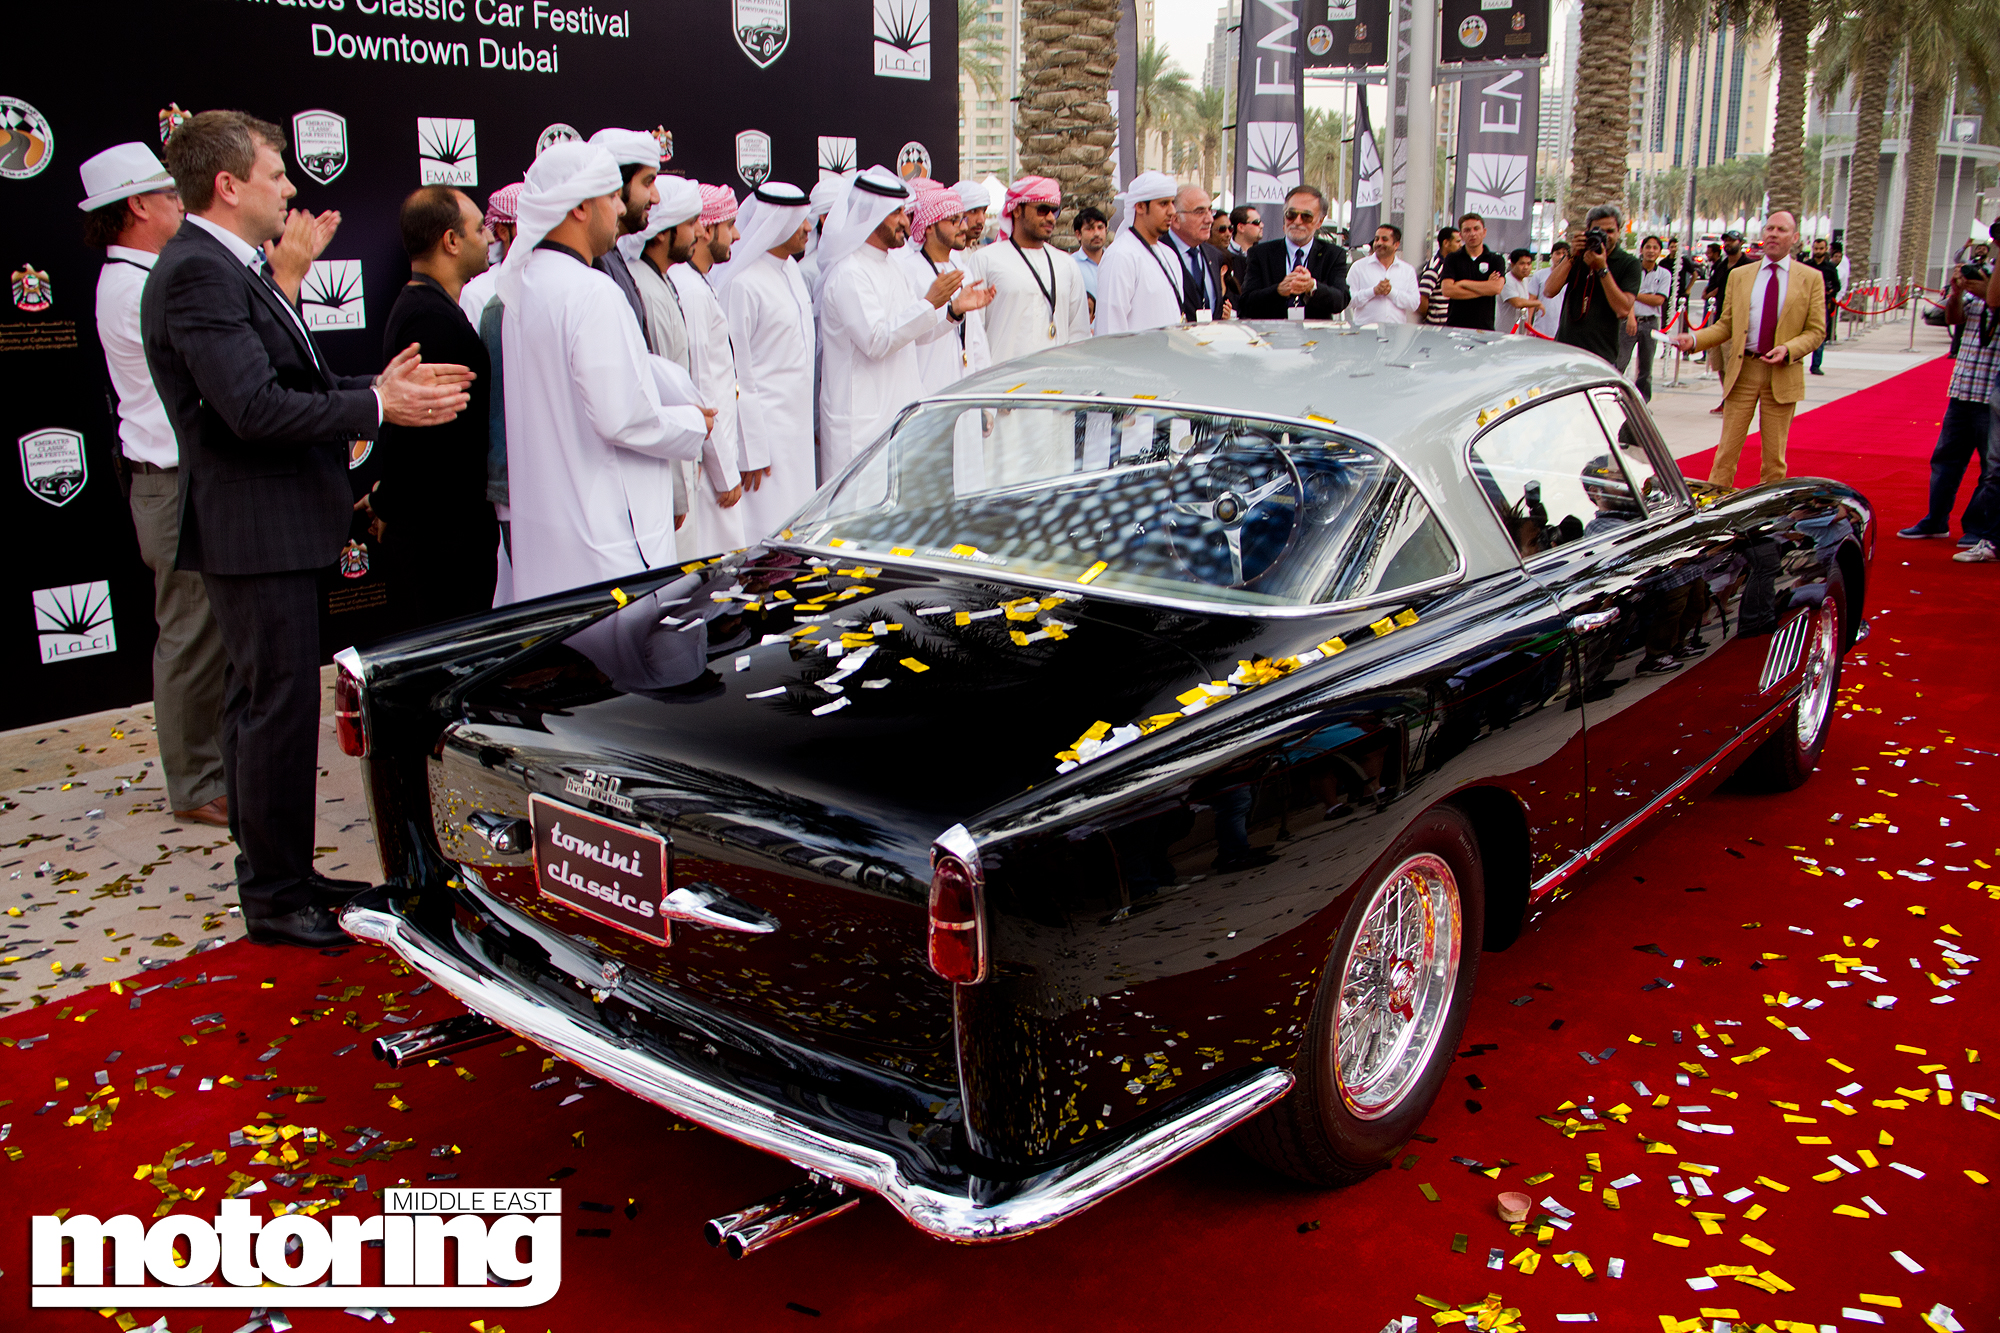 2015 Emirates Classic Car Festival Report And Winners Motoring